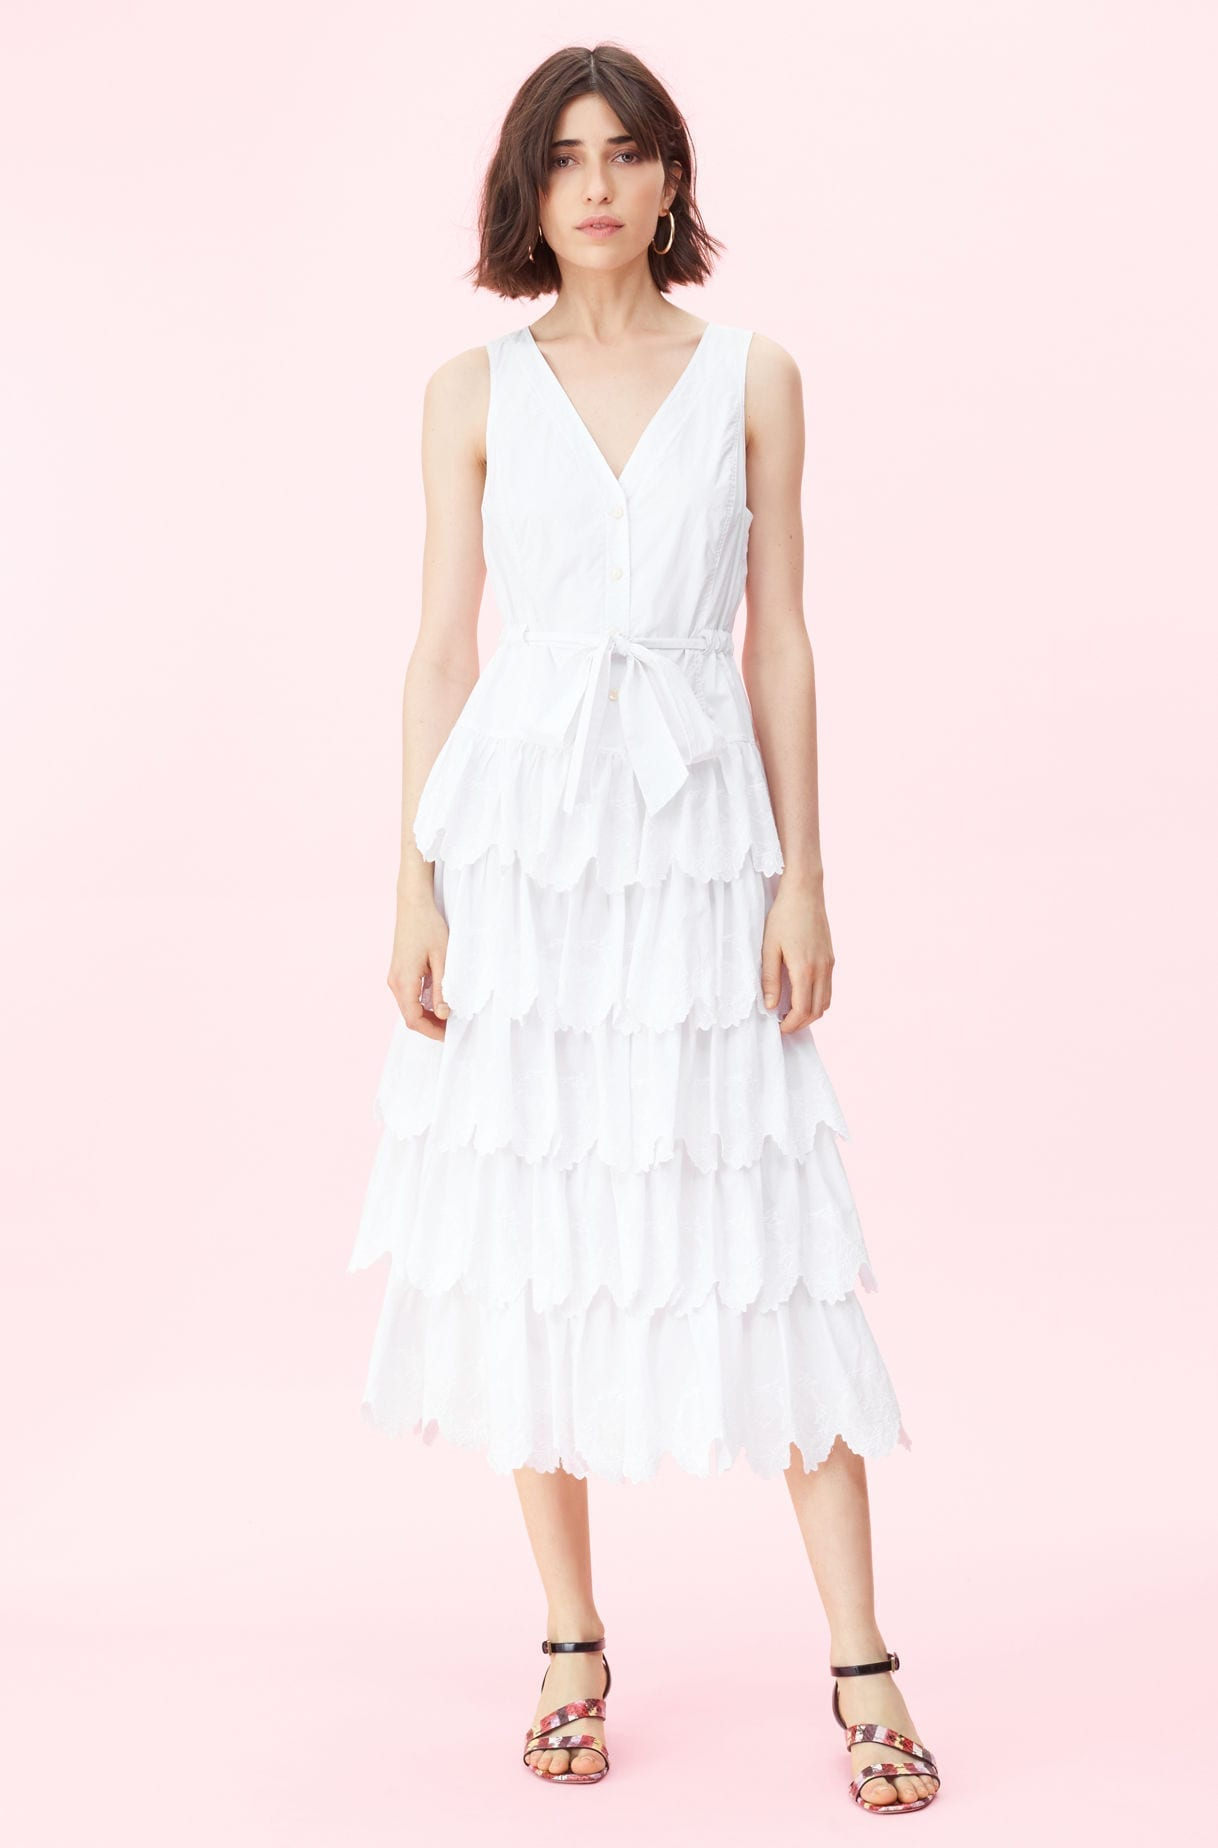 REBECCA TAYLOR La Vie Mireille Embroidered White Dress